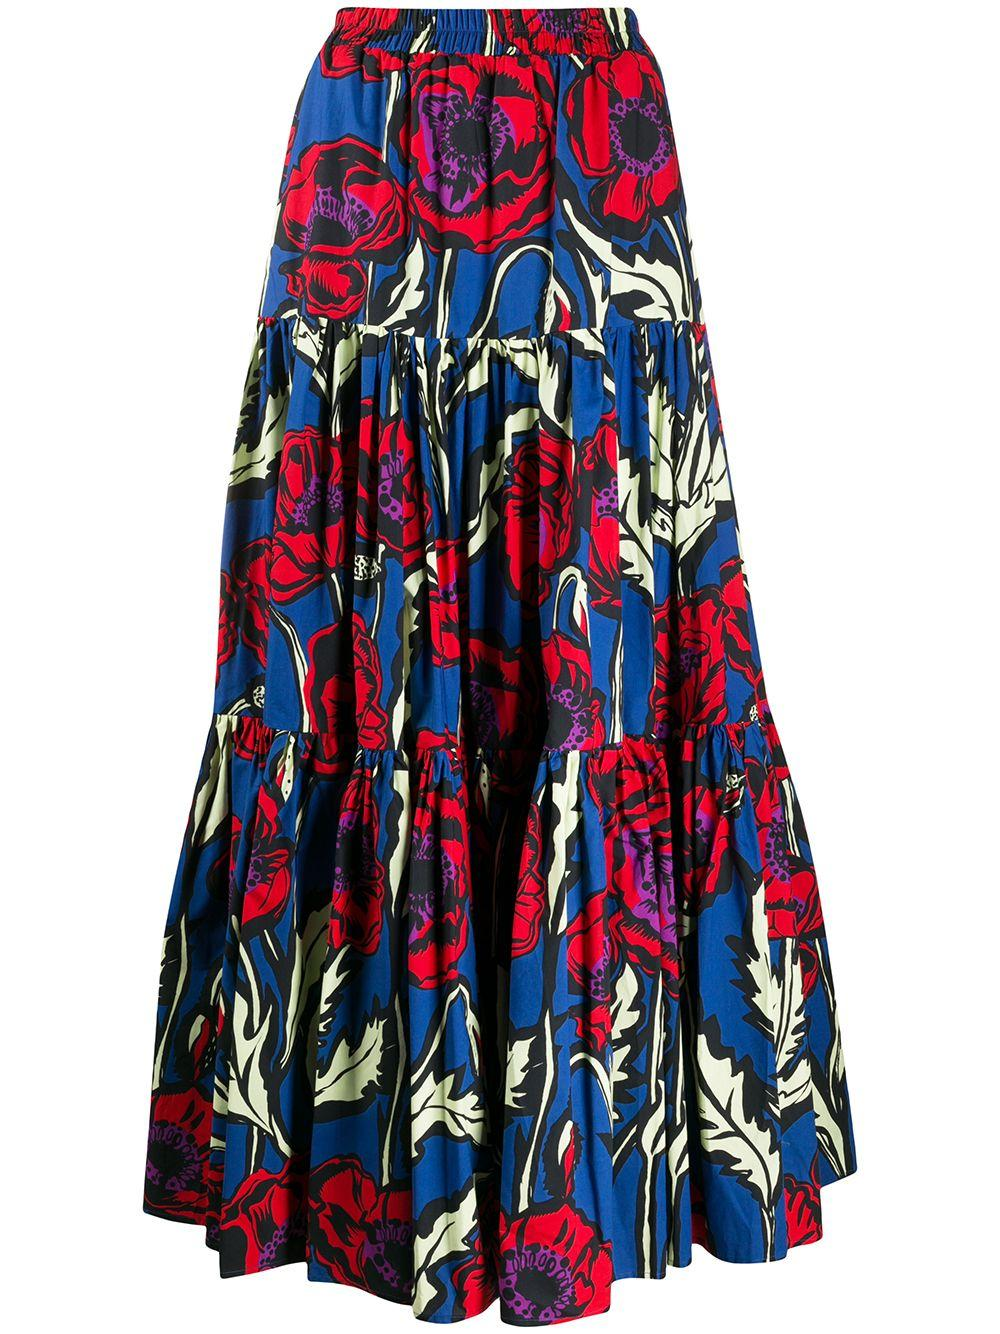 Printed Cotton Tiered Maxi Skirt